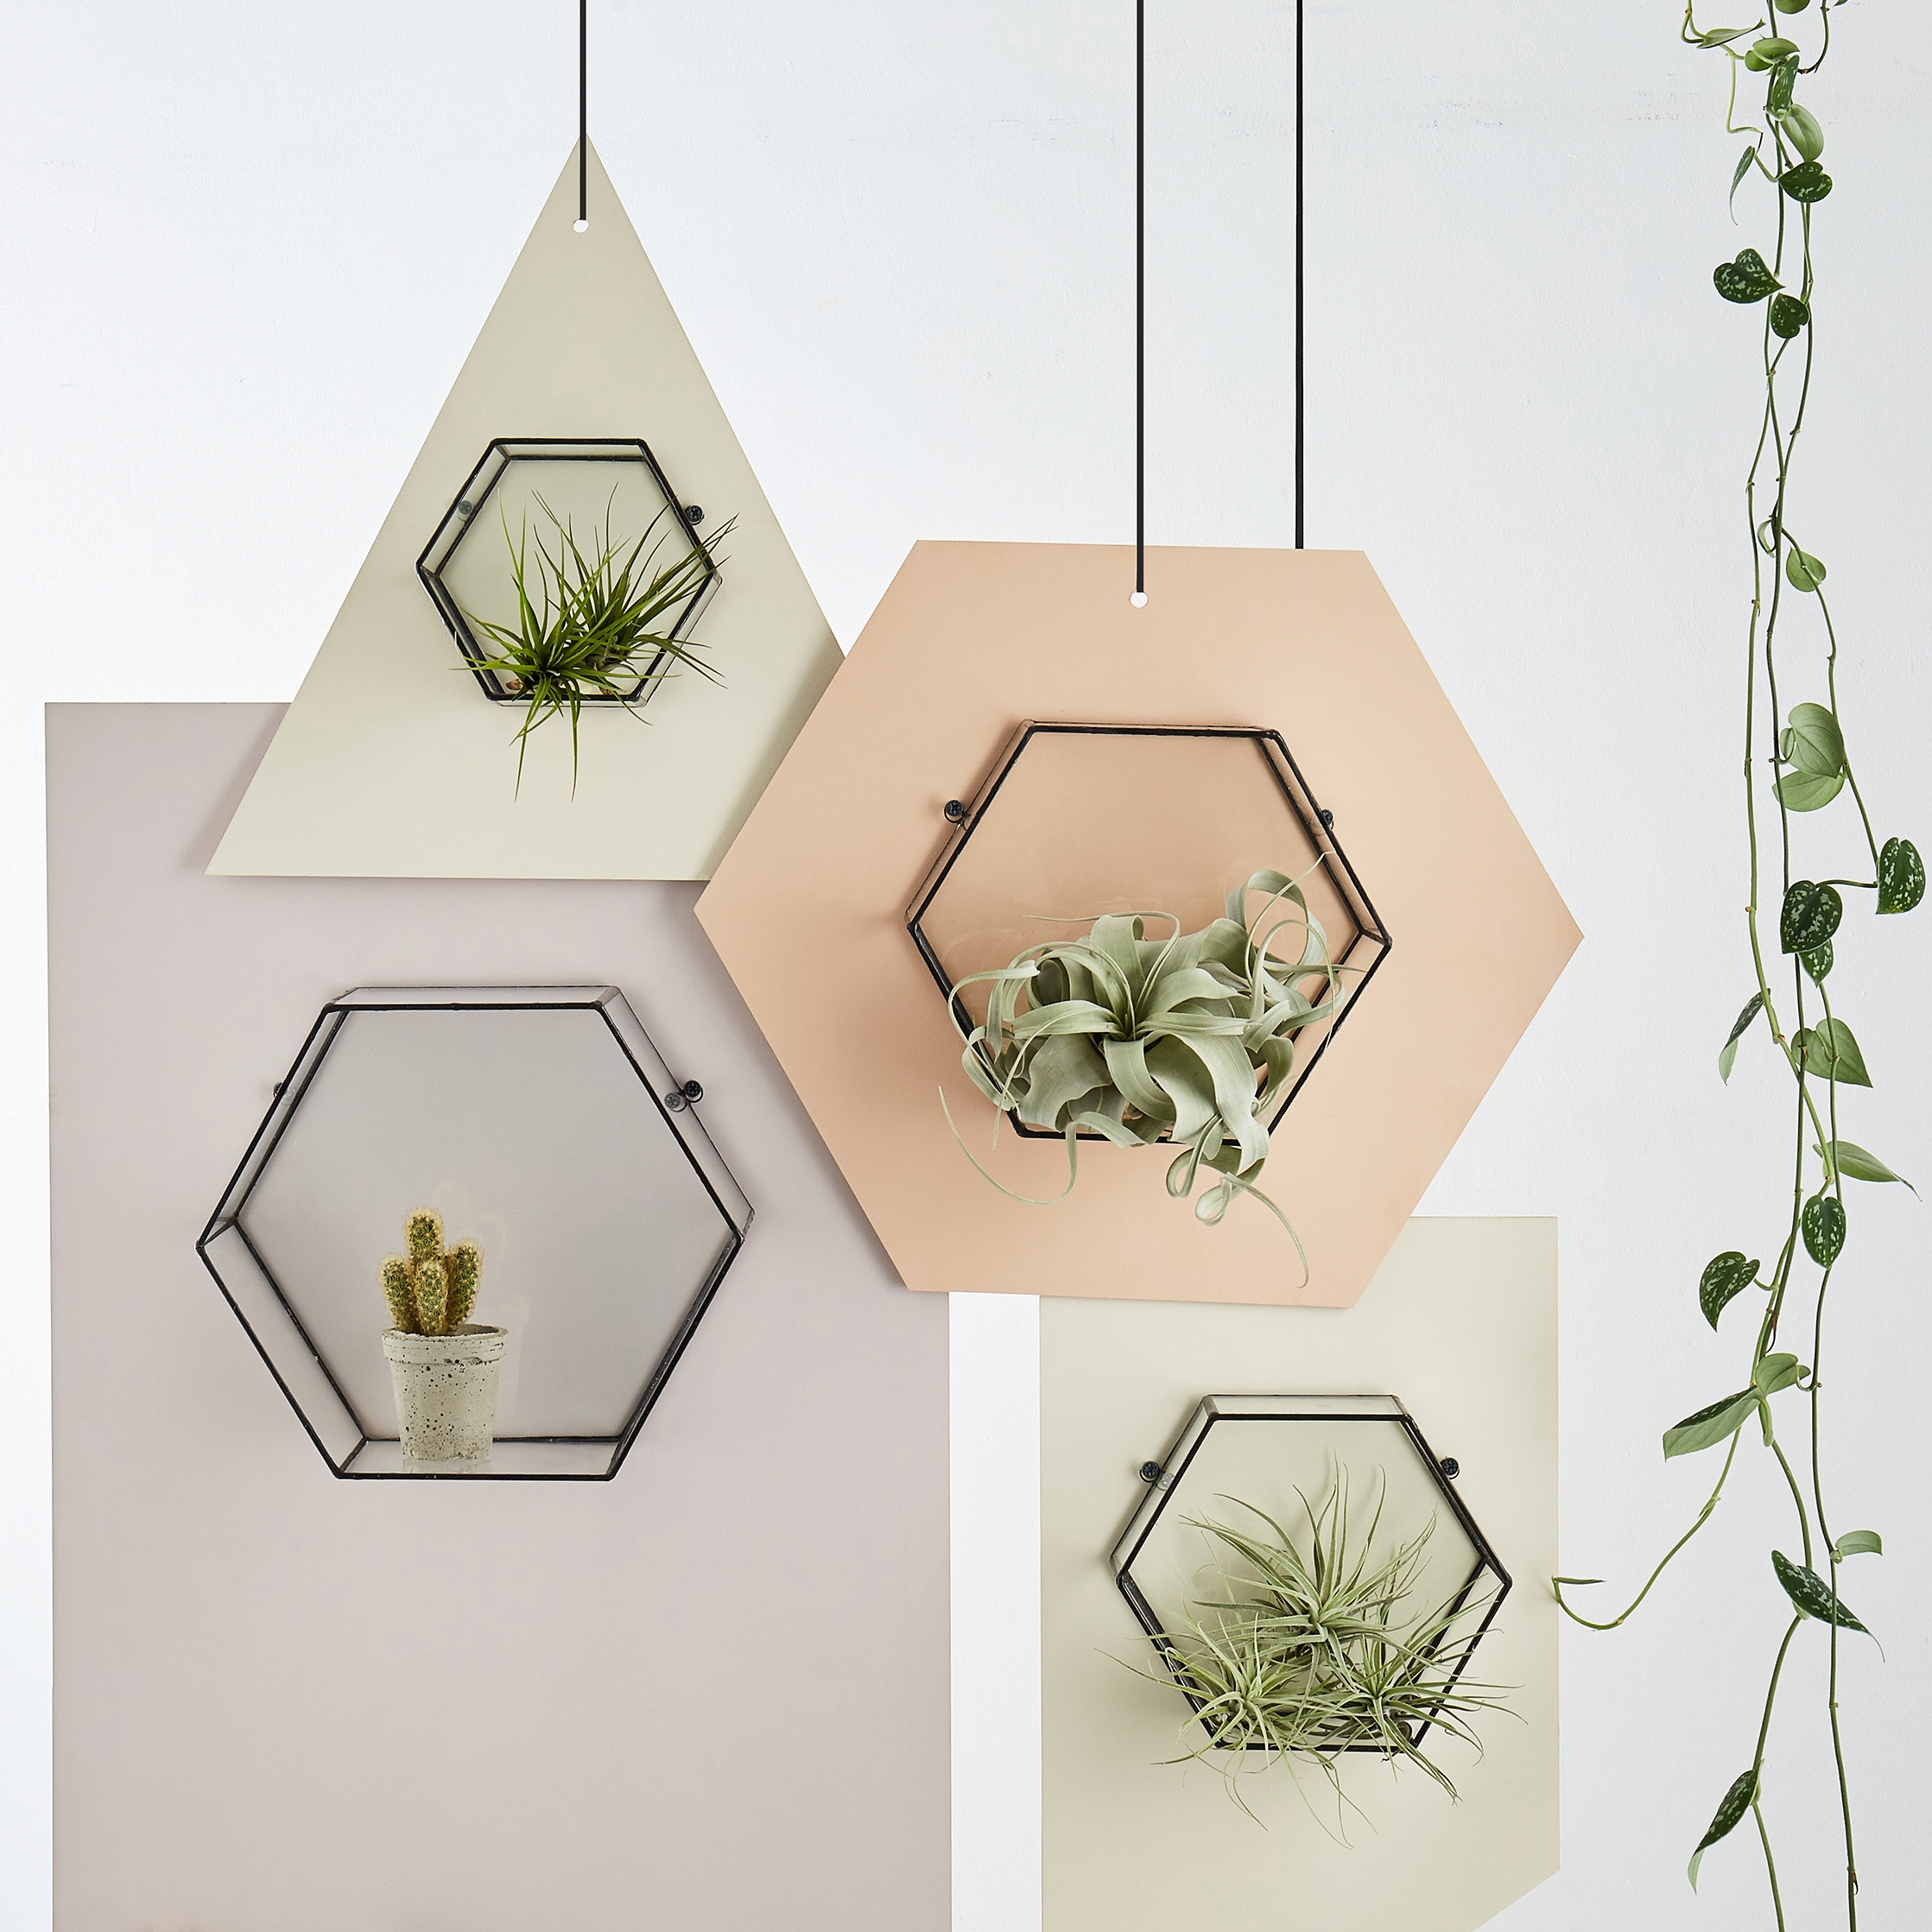 Dee Monti of MONTI - Dee Monti is the founder and designer of the geometric glassware brand MONTI which she launched in 2015. She is a self-taught glass artist who designs and makes all pieces by hand in her London home studio using glass, copper and solder. Dee has been featured in various publications and often works with private clients to create bespoke pieces. Her current collection is a selection of geometric multi-functional shapes which bring simple geometric design and nature together with the encouragement to be creative with your choice of shapes and how you adapt them to your personal surroundings.